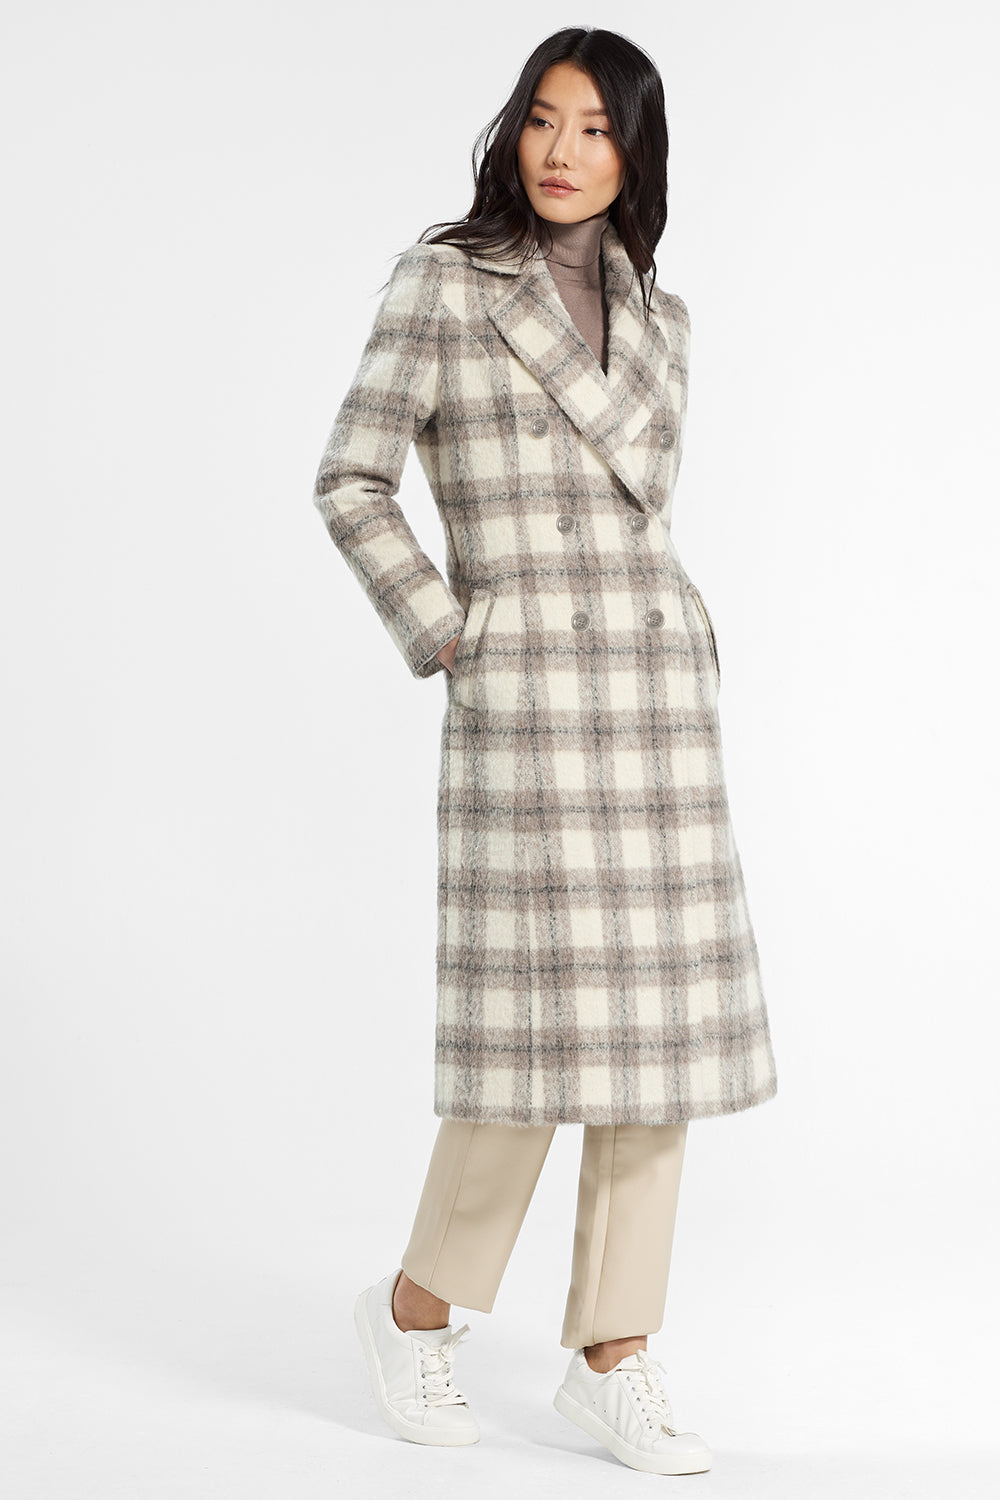 Sentaler Plaid Long Double Breasted Coat featured in Suri Alpaca and available in Ecru Plaid. Seen from front.